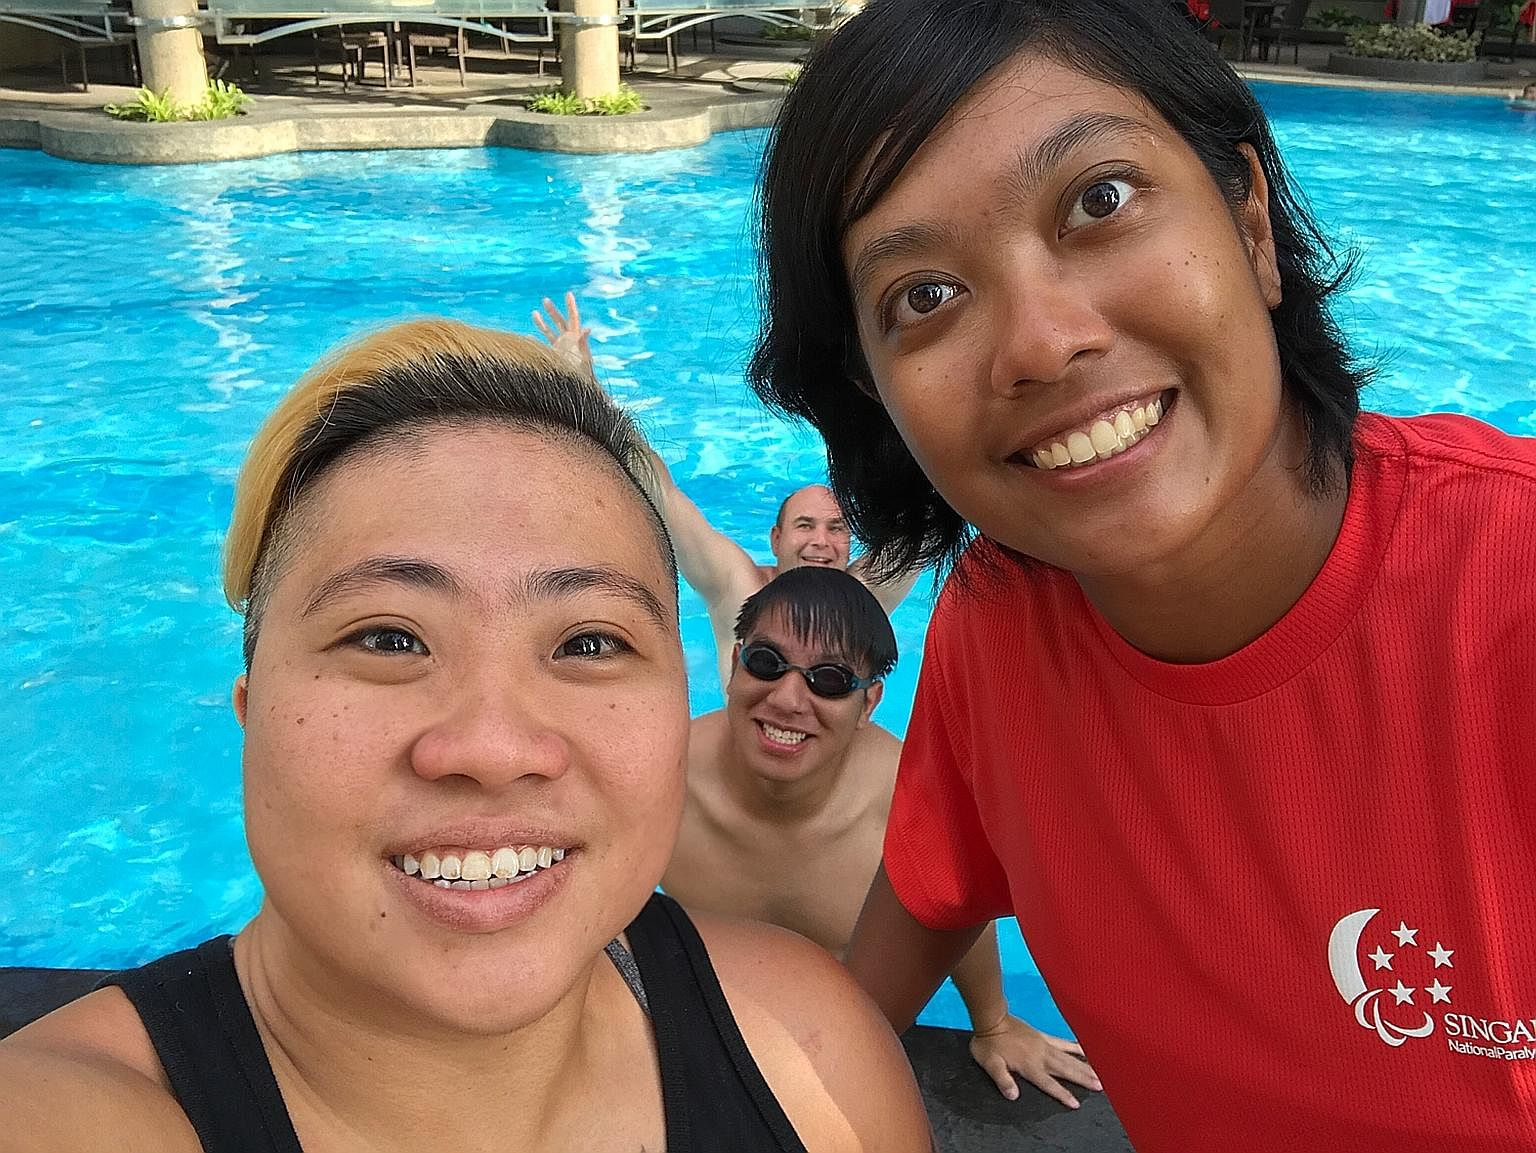 Paralympic swimmer Theresa Goh and para-archer Nur Syahidah Alim chilling out at the pool at the Asean Para Games in Kuala Lumpur.